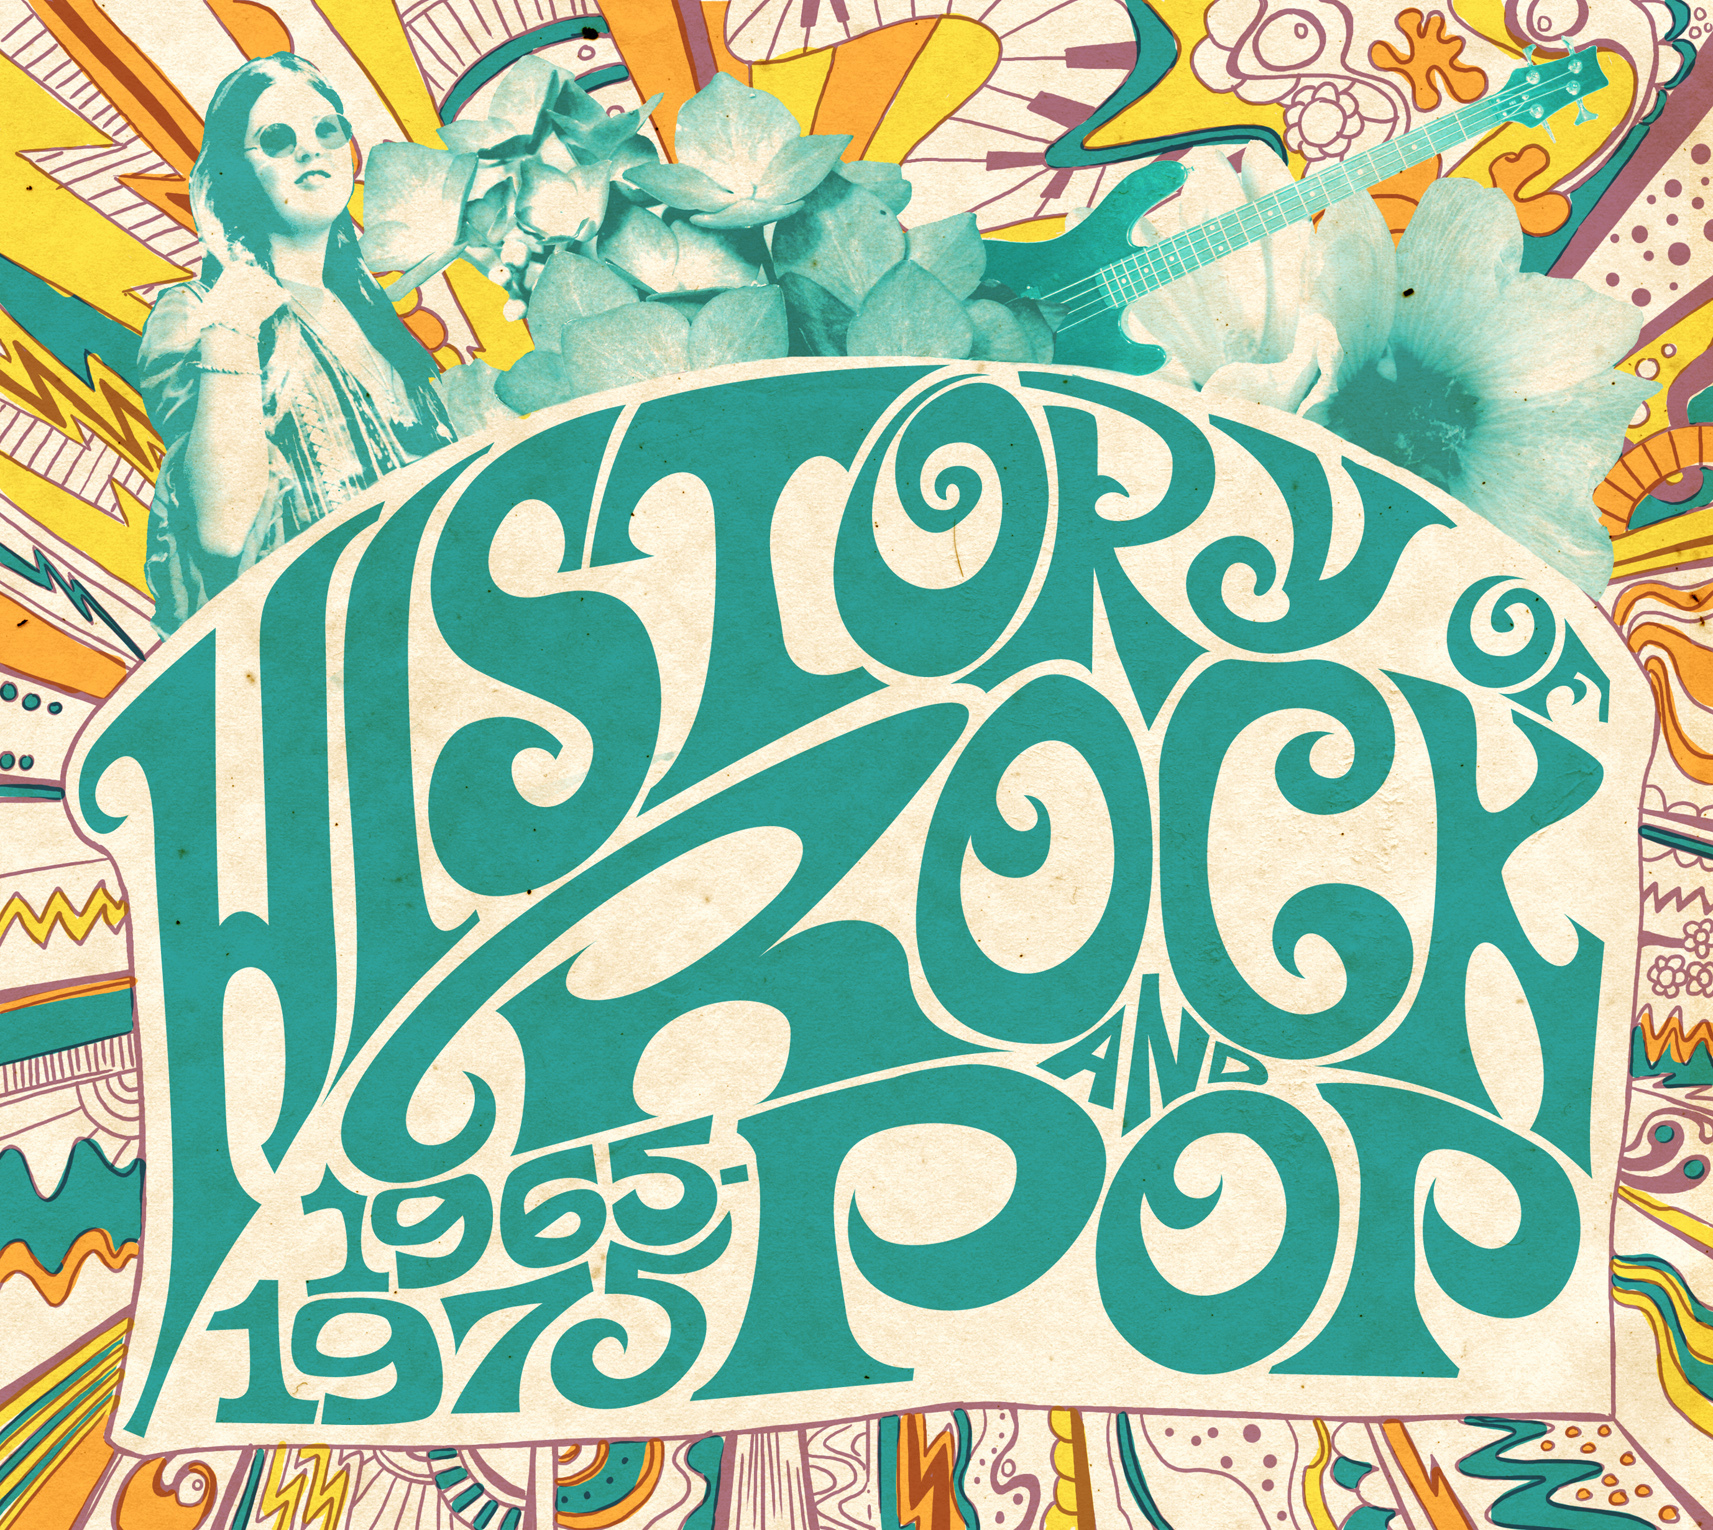 History Of Rock And Pop